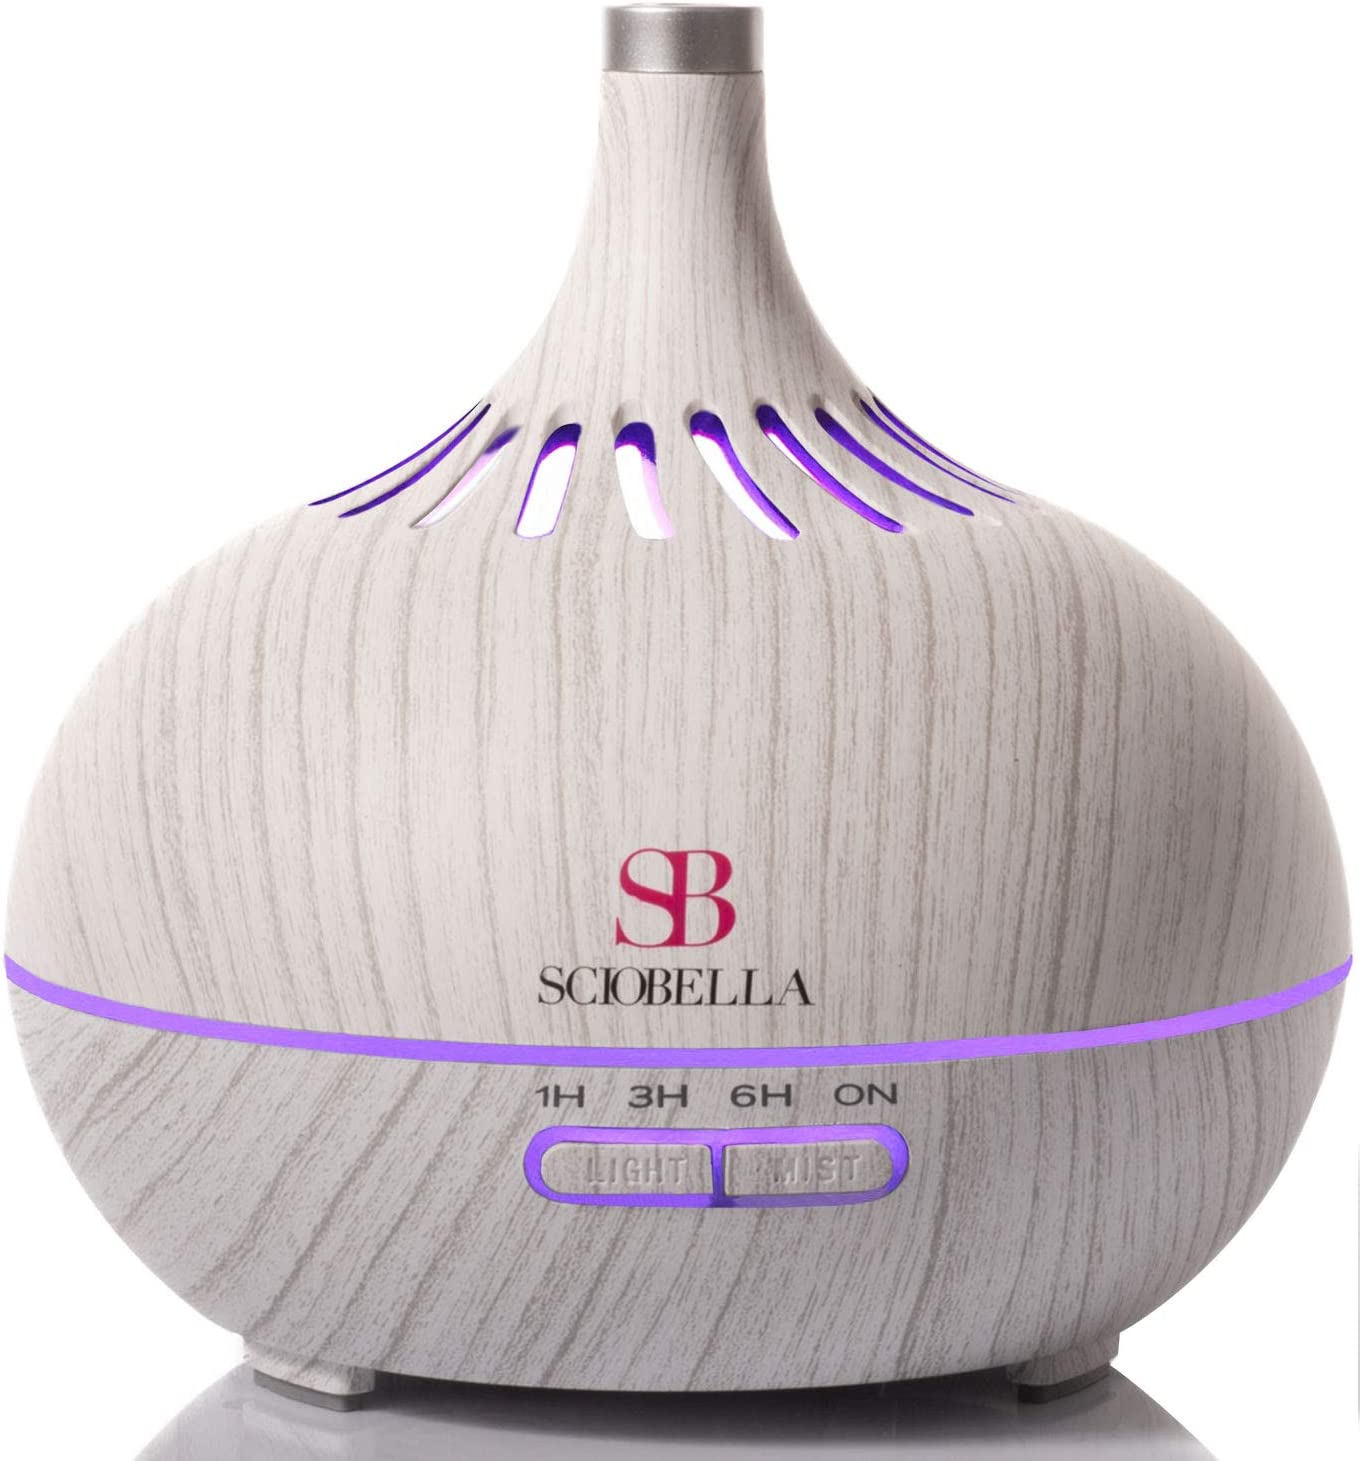 Max 50% OFF Sciobella Essential Oil Diffuser for Large Aroma Ultrasonic Room Online limited product